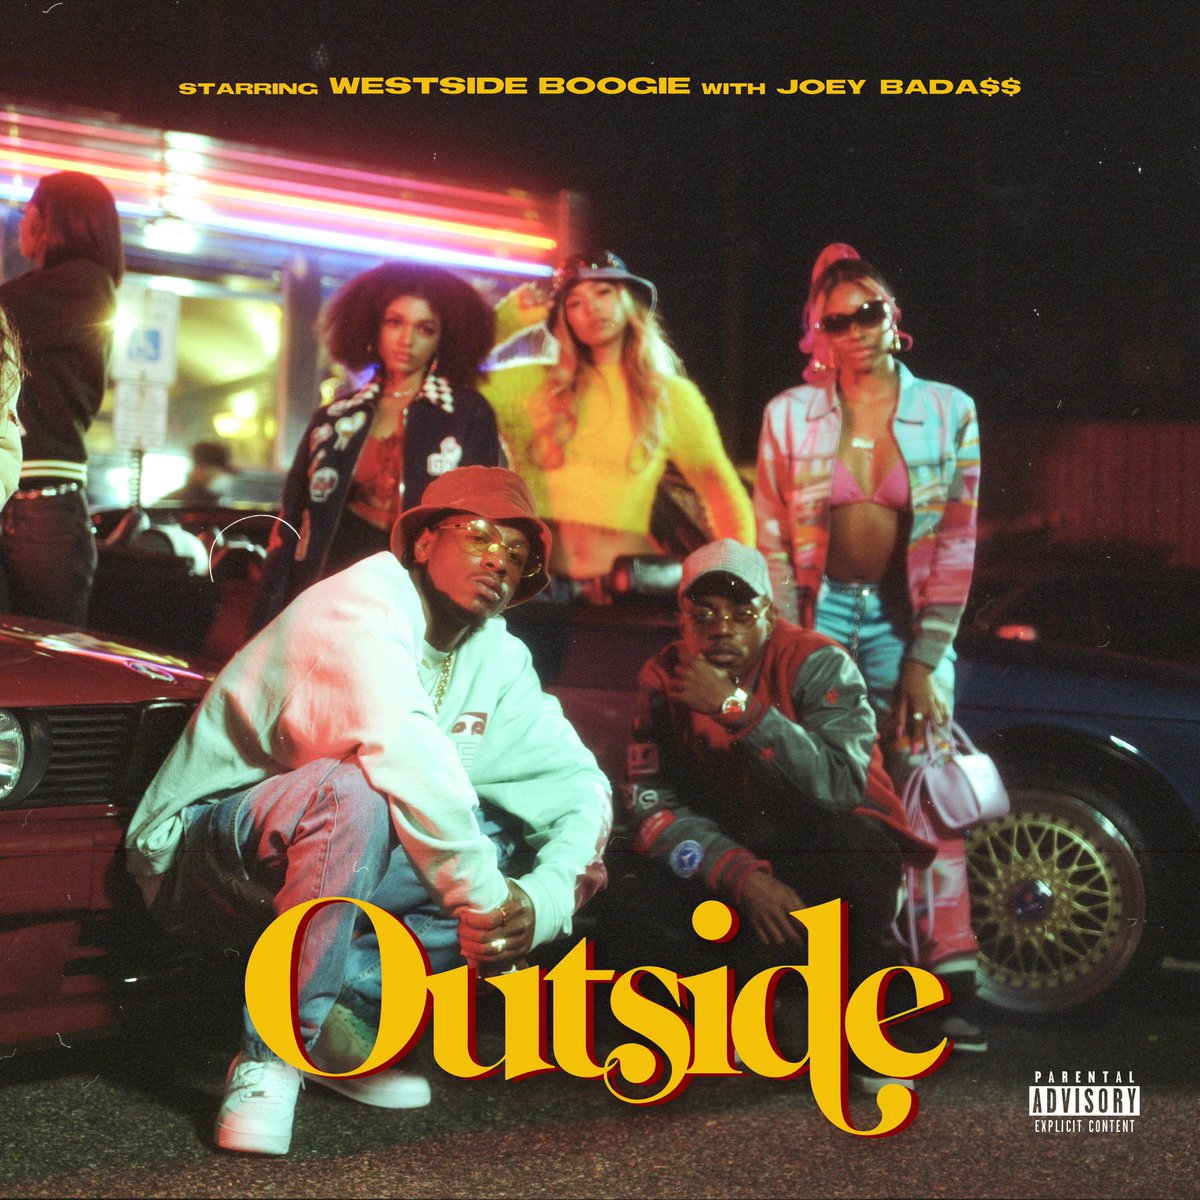 WESTSIDE BOOGIE & Joey Bada$$ release their collaborative track 'Outside'  [@WS_Boogie @joeyBADASS]